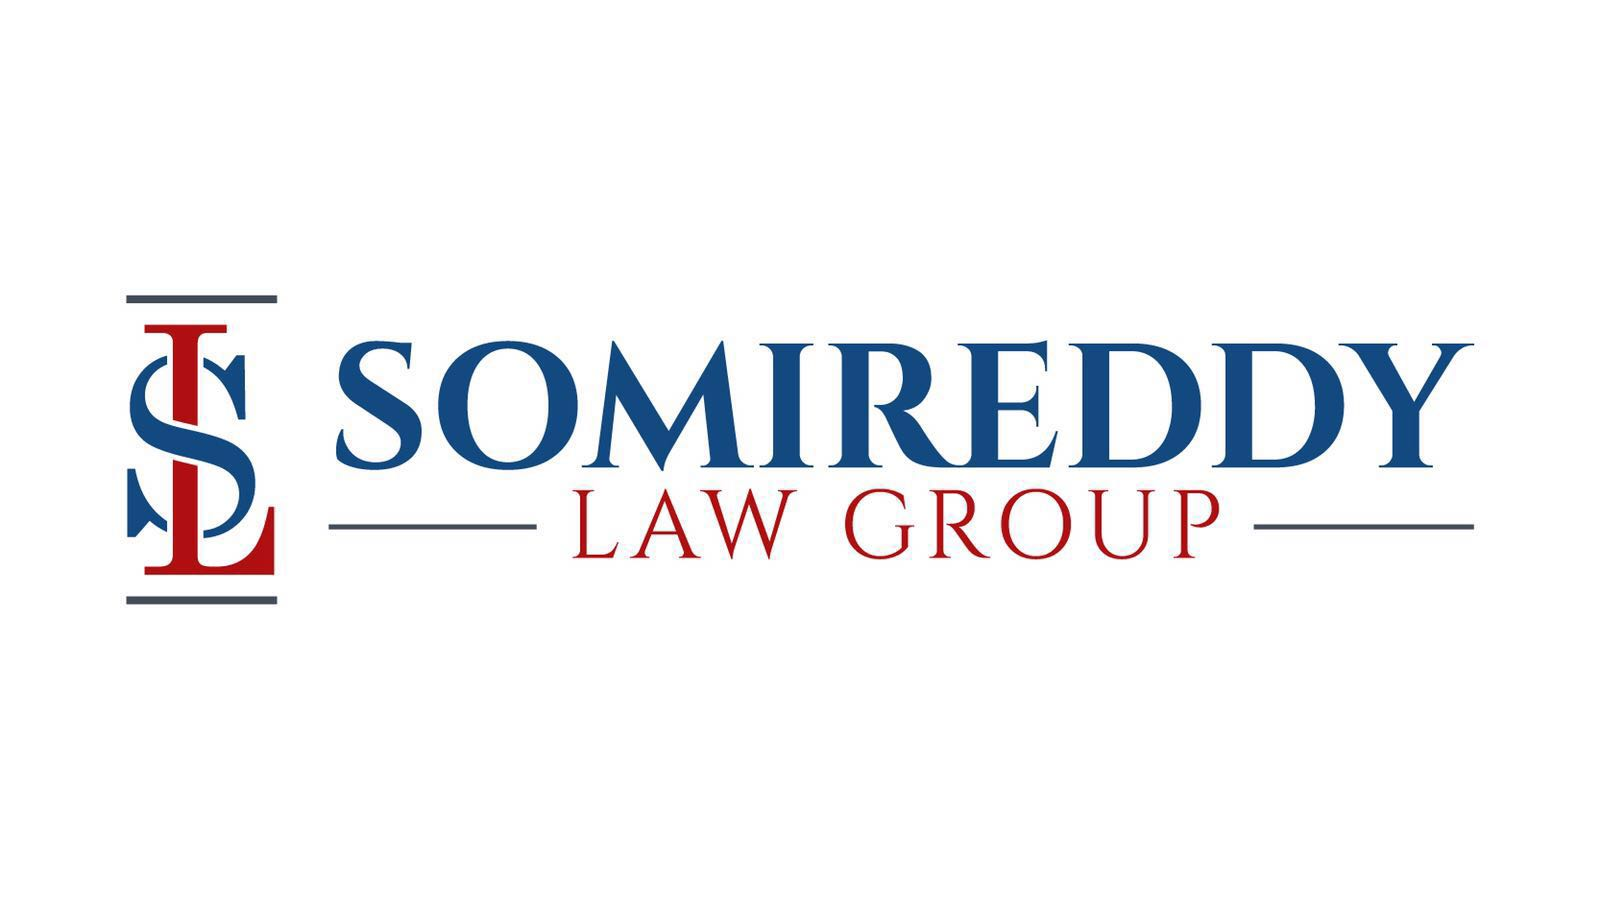 SOMIREDDY LAW GROUP